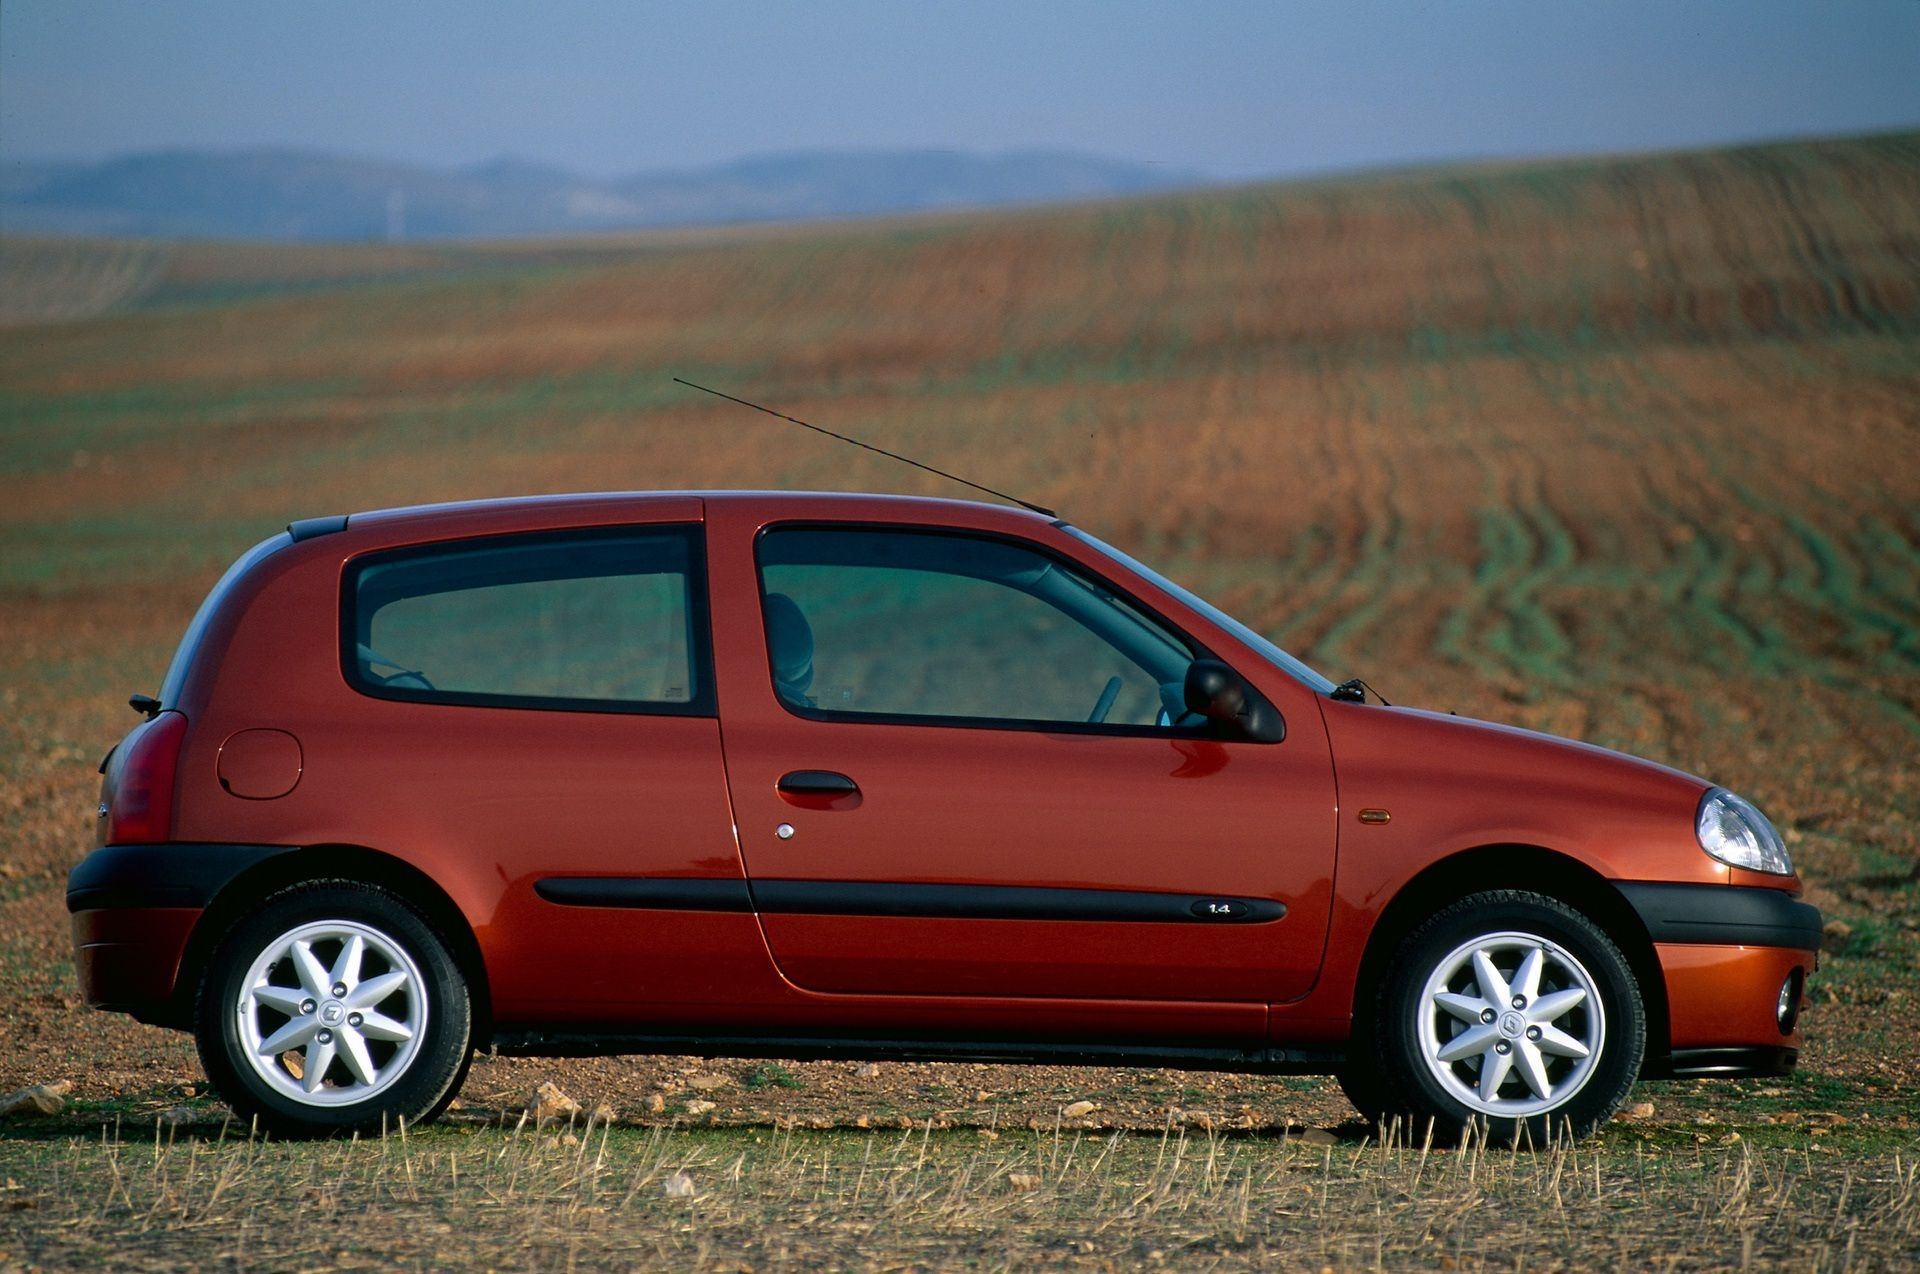 2020-30-years-of-Renault-CLIO-Renault-CLIO-2-1998-2005-3